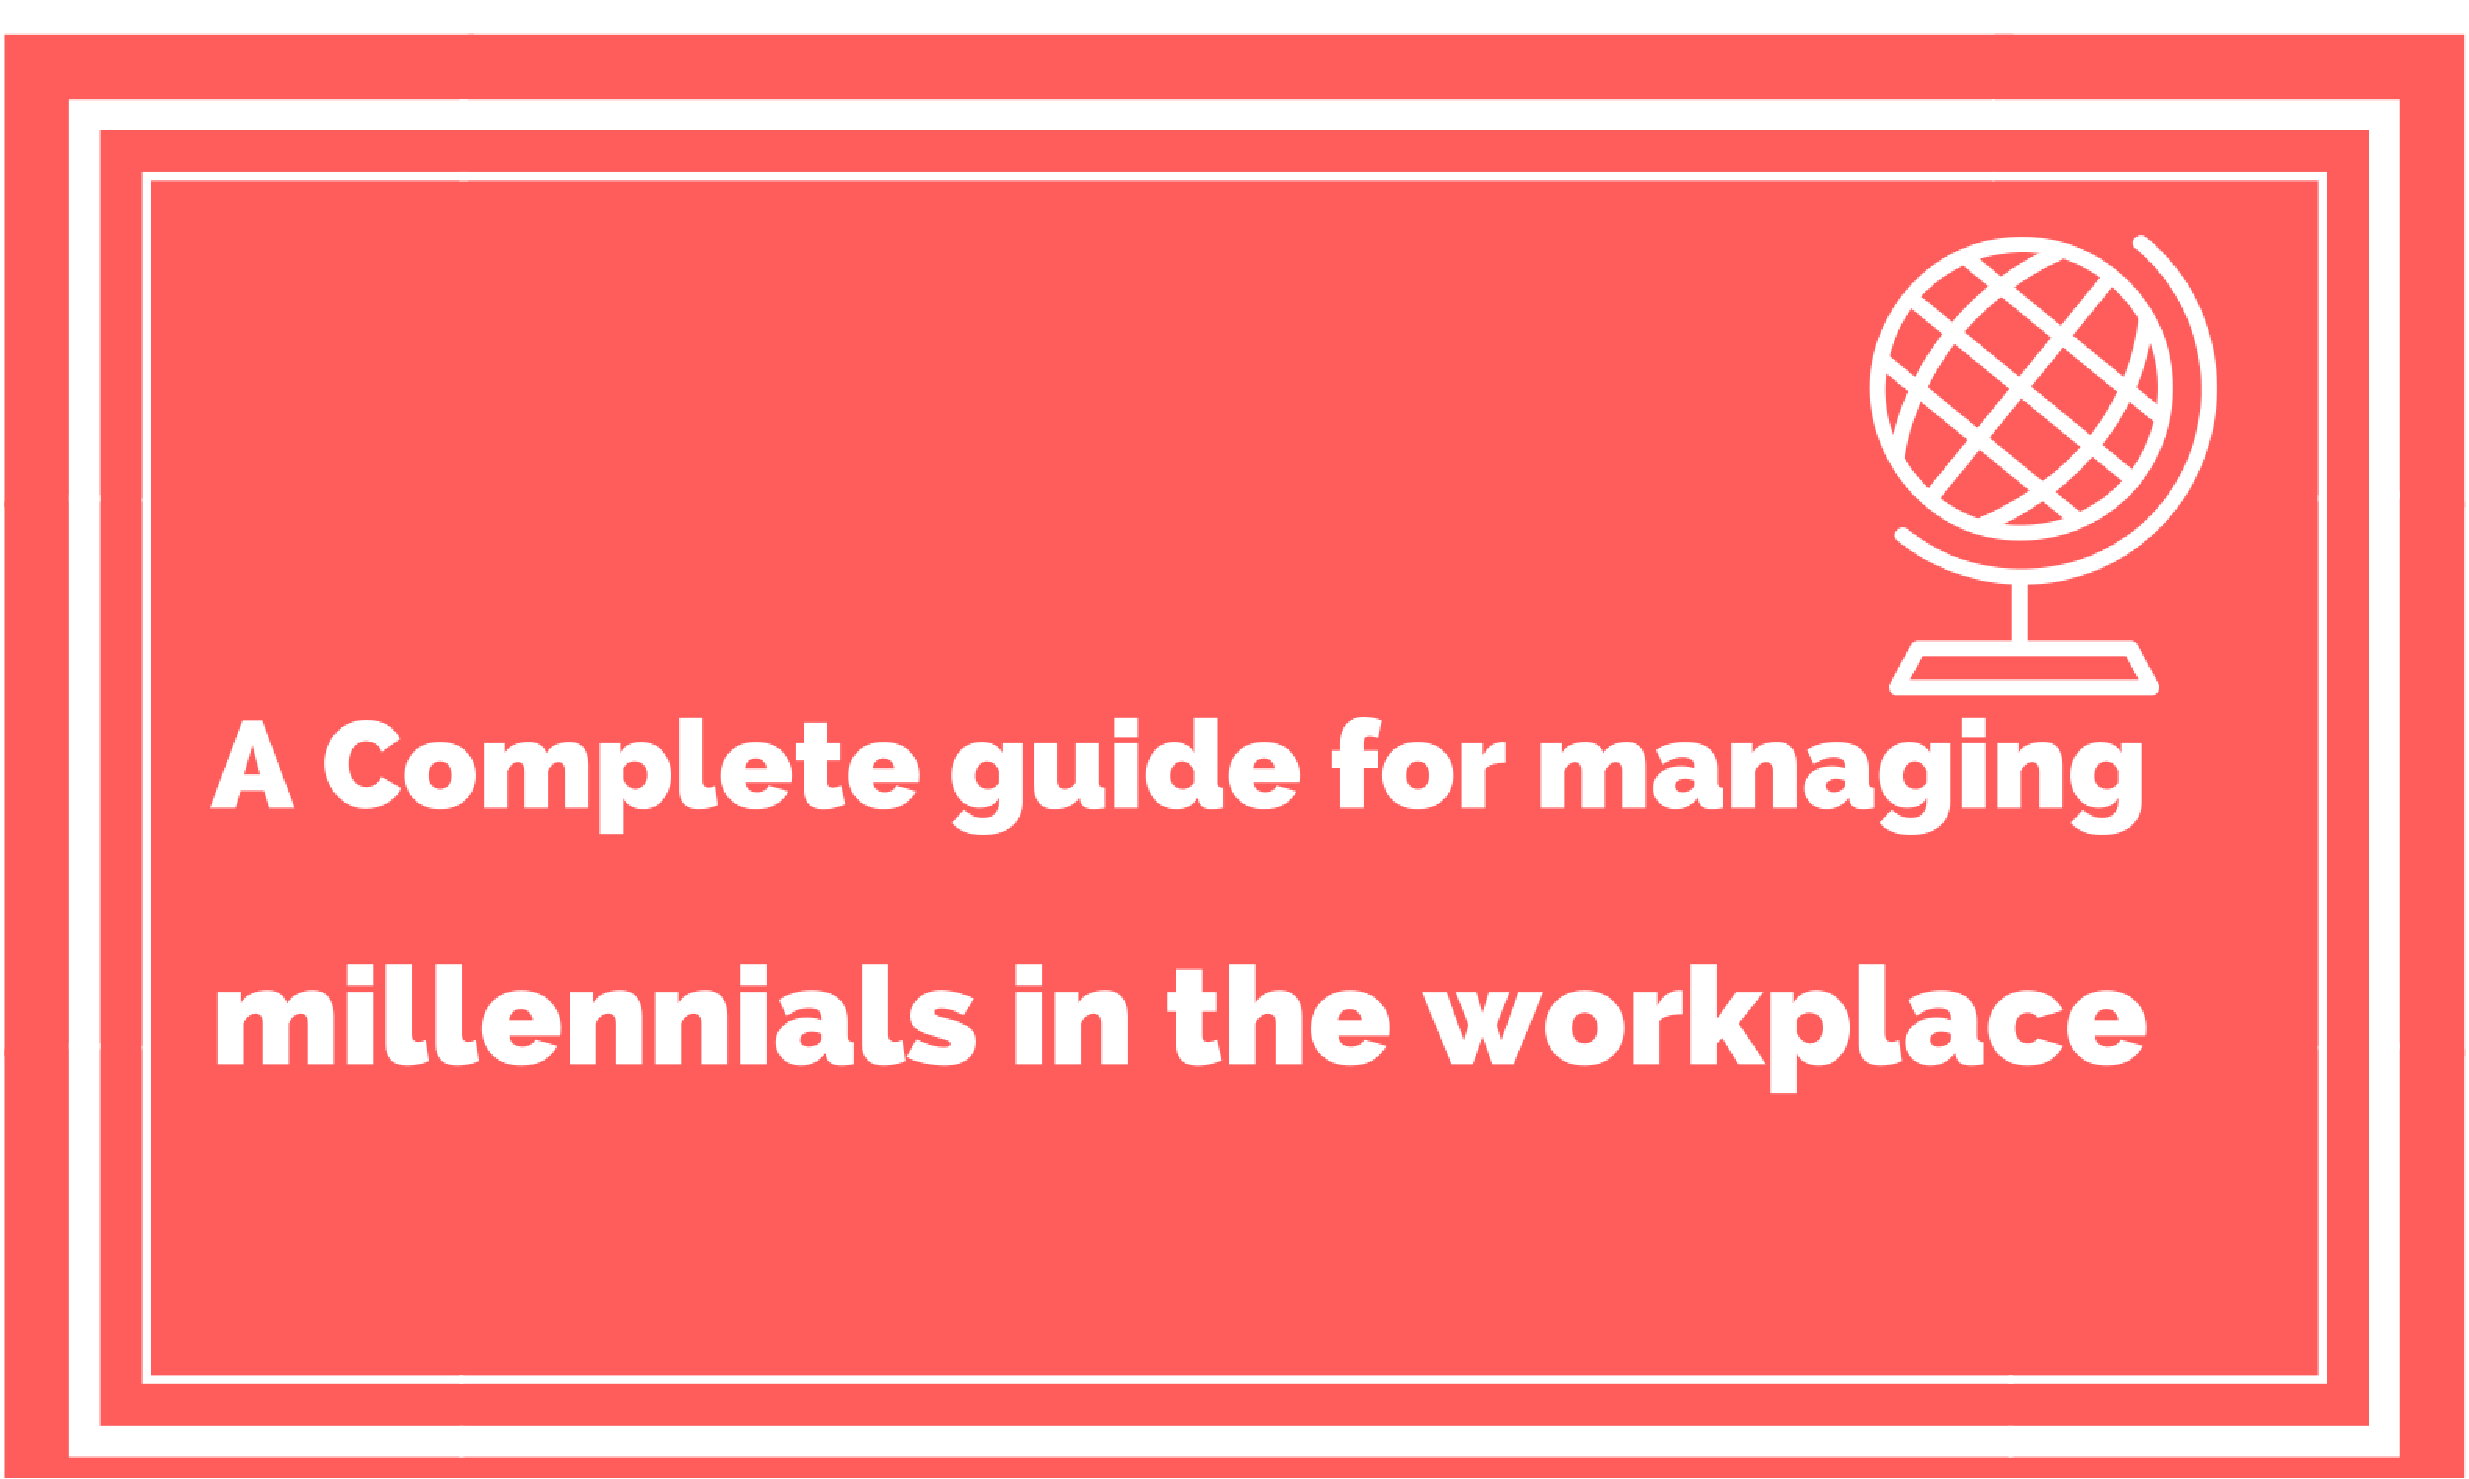 A Complete Guide to Managing Millennials in the Workplace